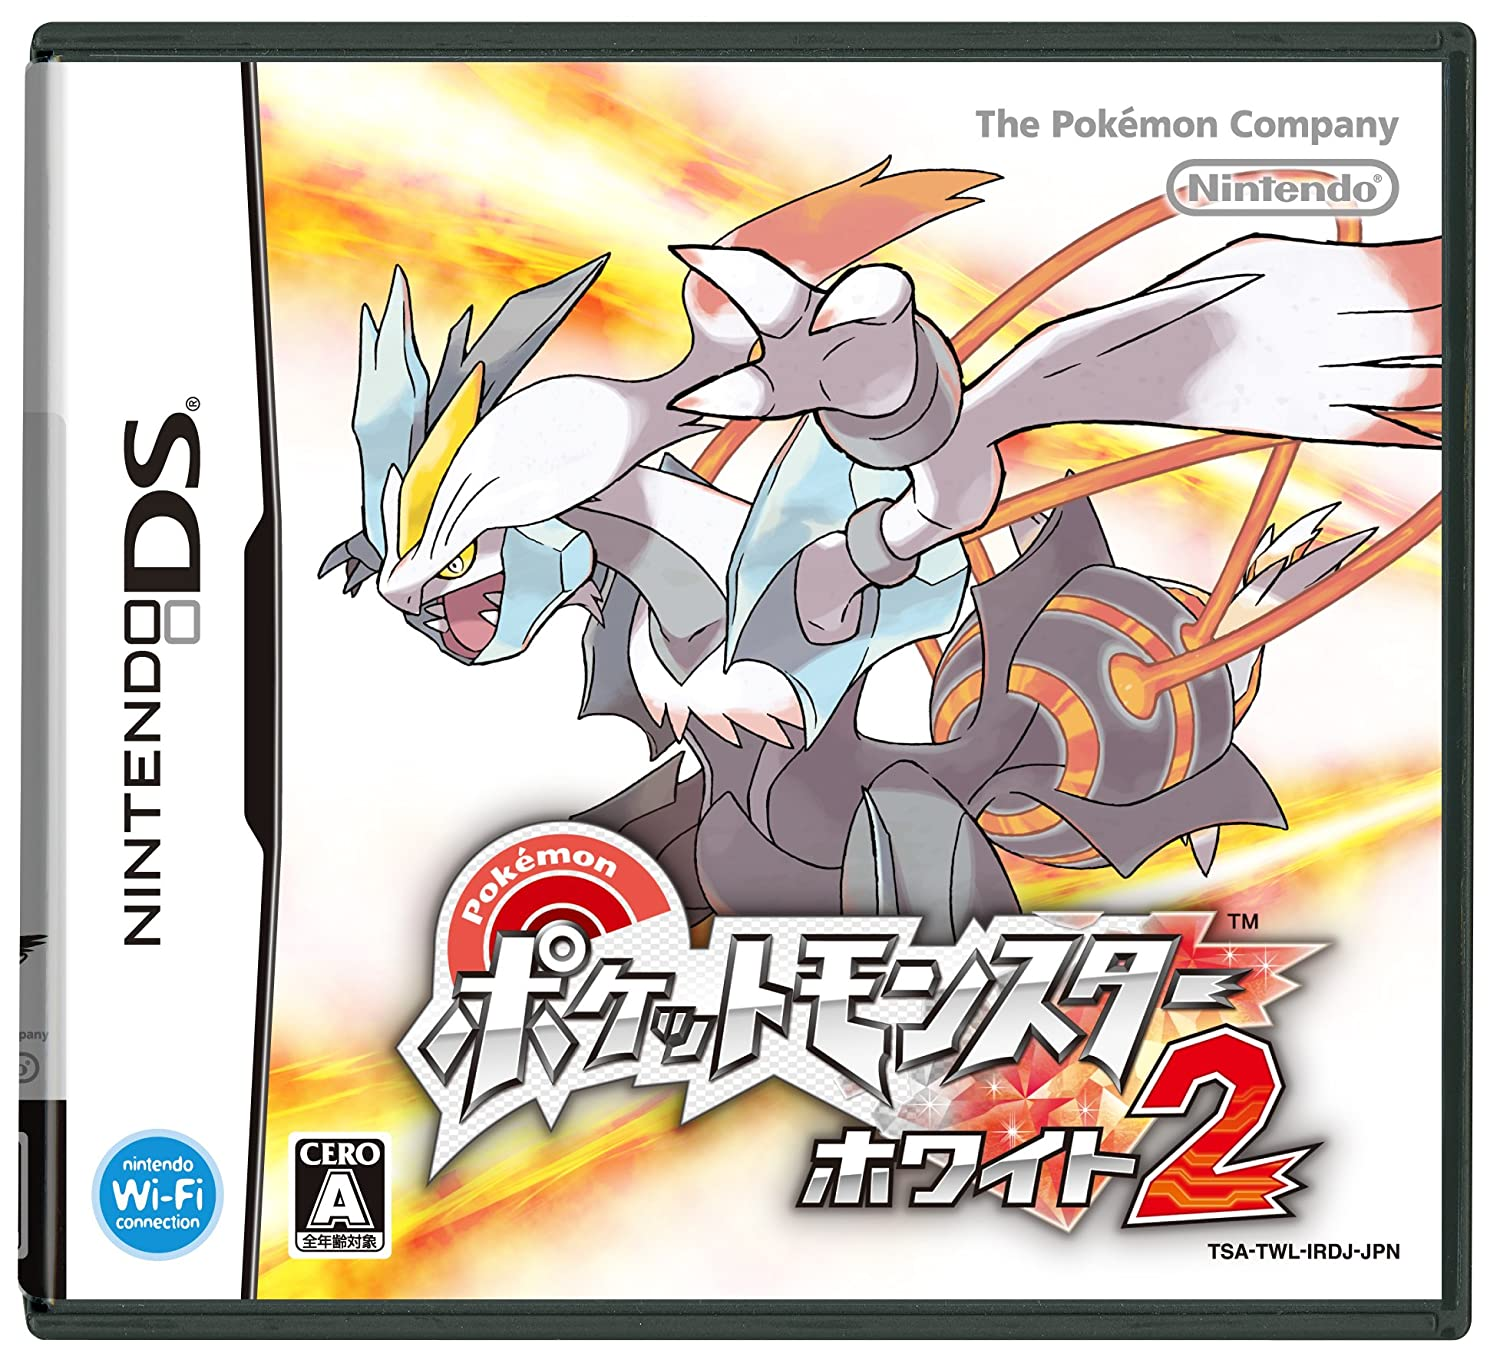 Pokemon Black and White DS 2 Challenge the lowest price of Japan ☆ Max 80% OFF Game Version - Japan